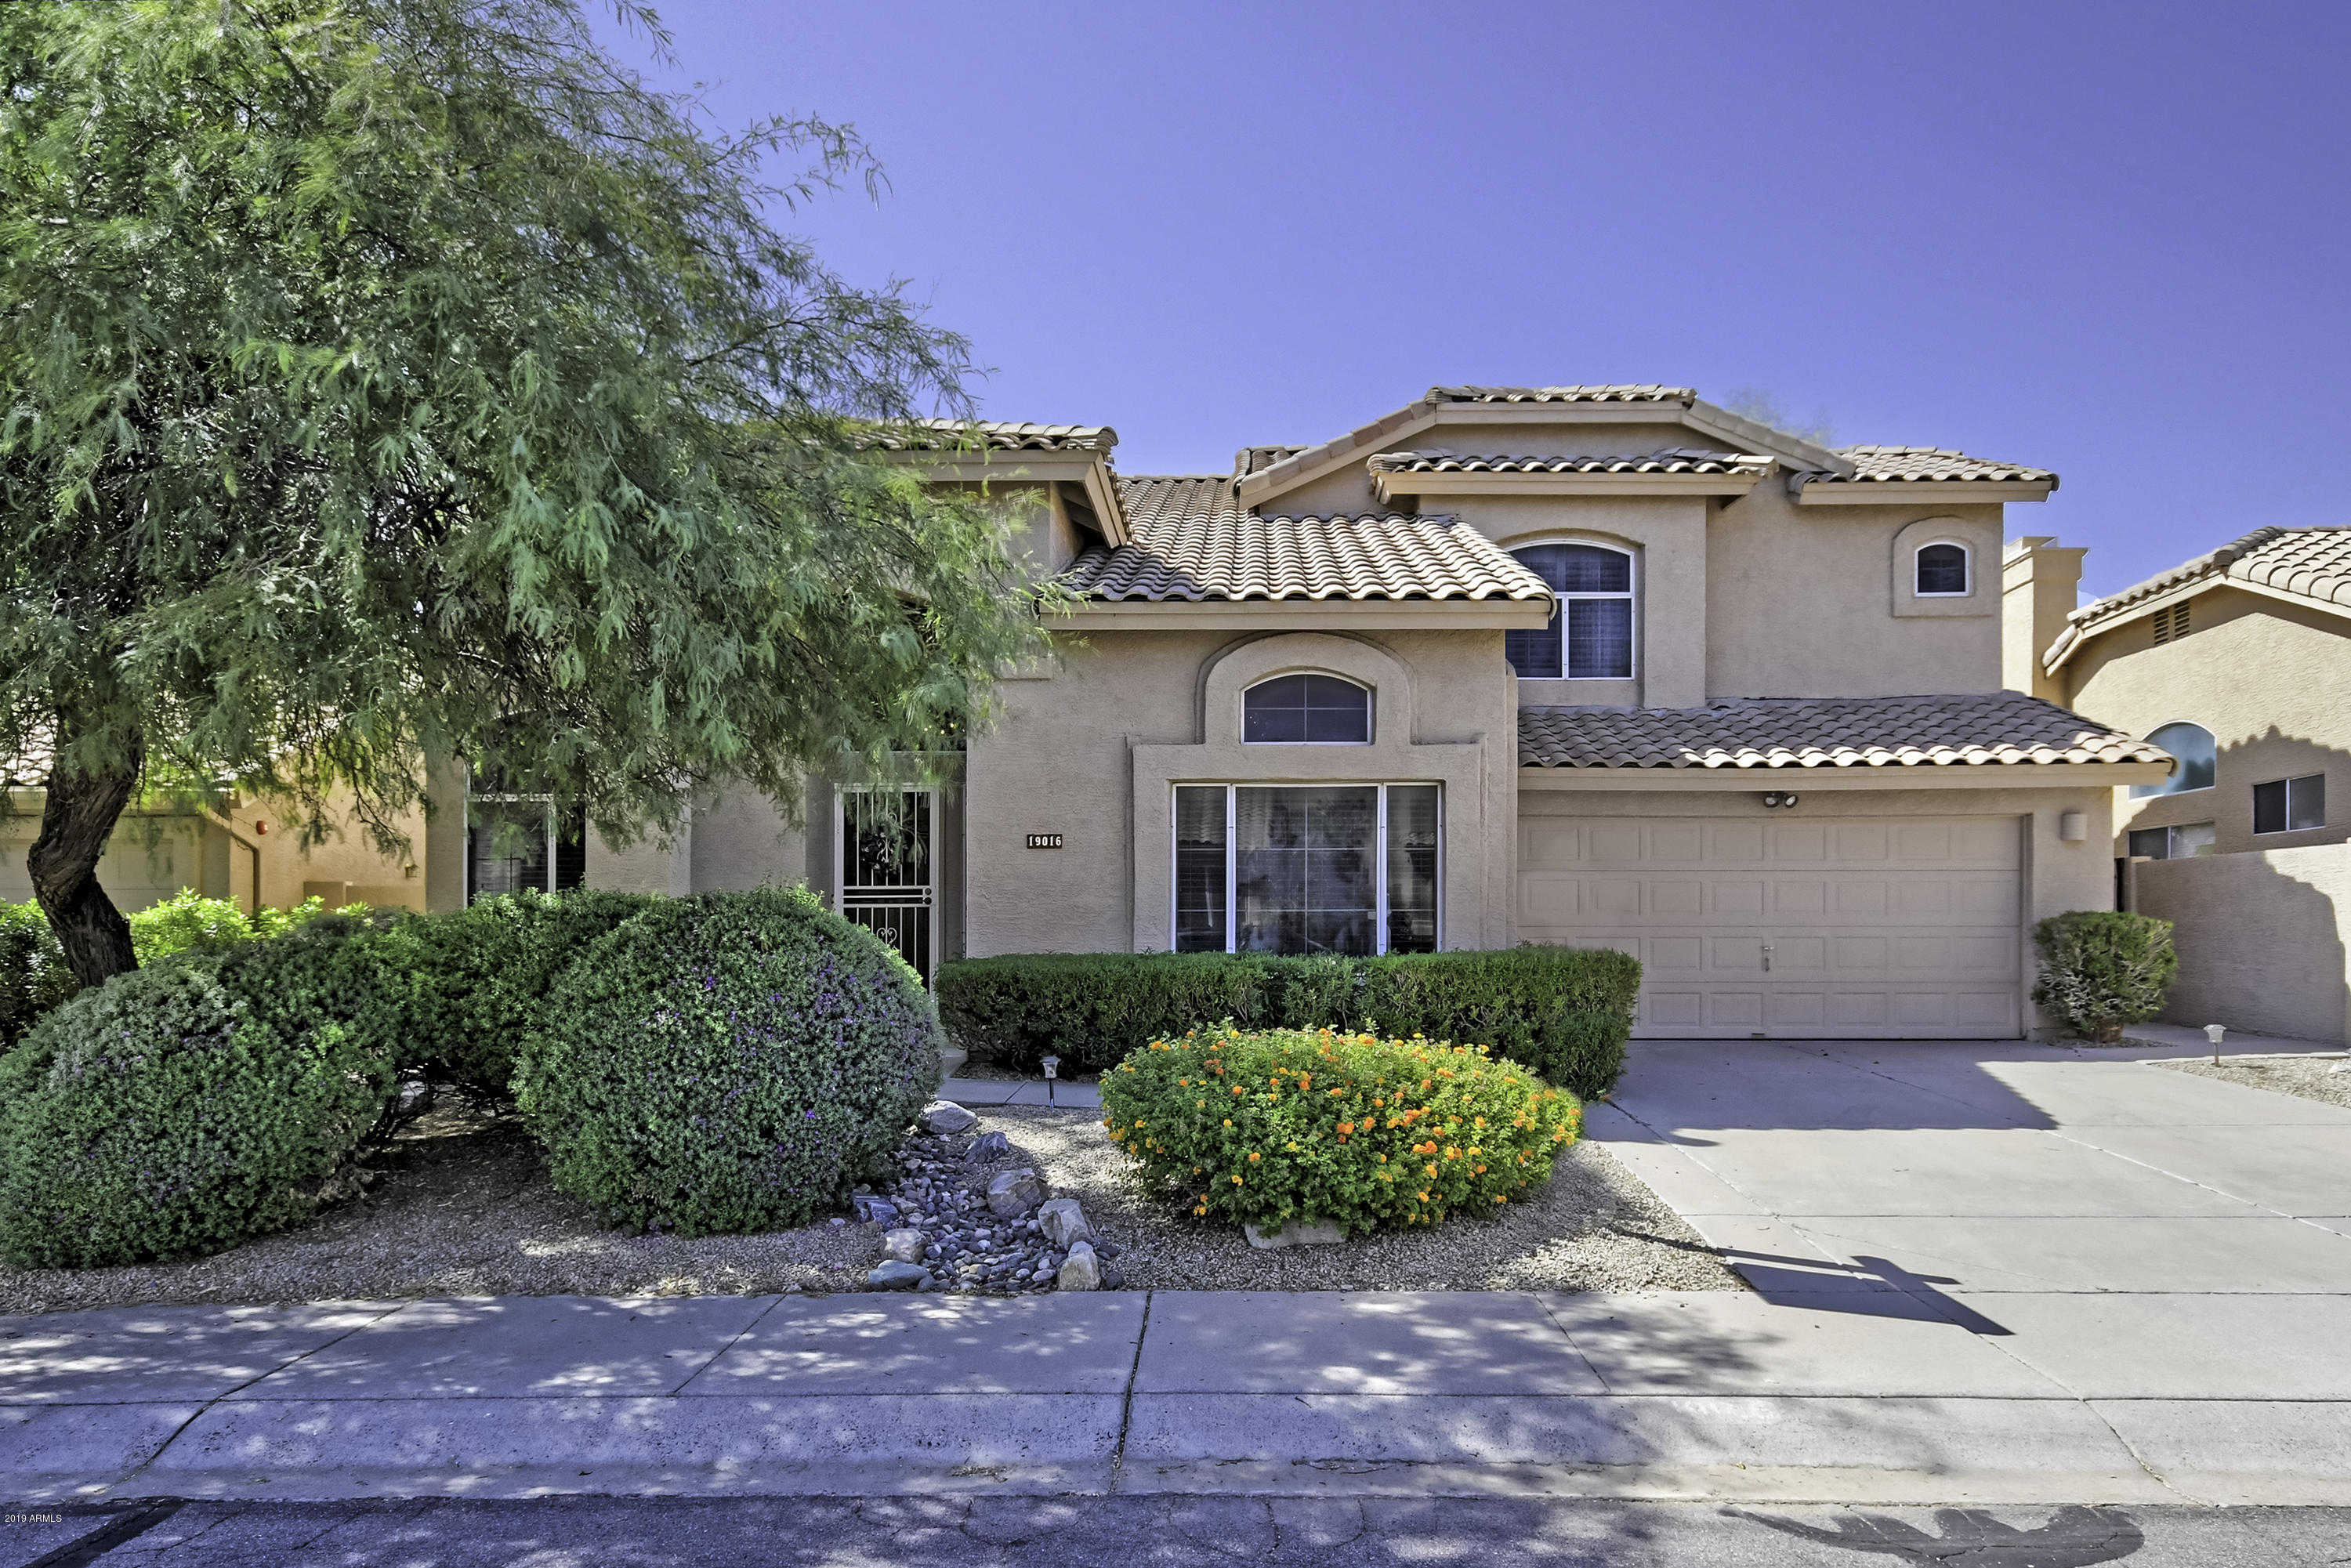 $479,000 - 3Br/3Ba - Home for Sale in Ironwood Village The Cliffs, Scottsdale